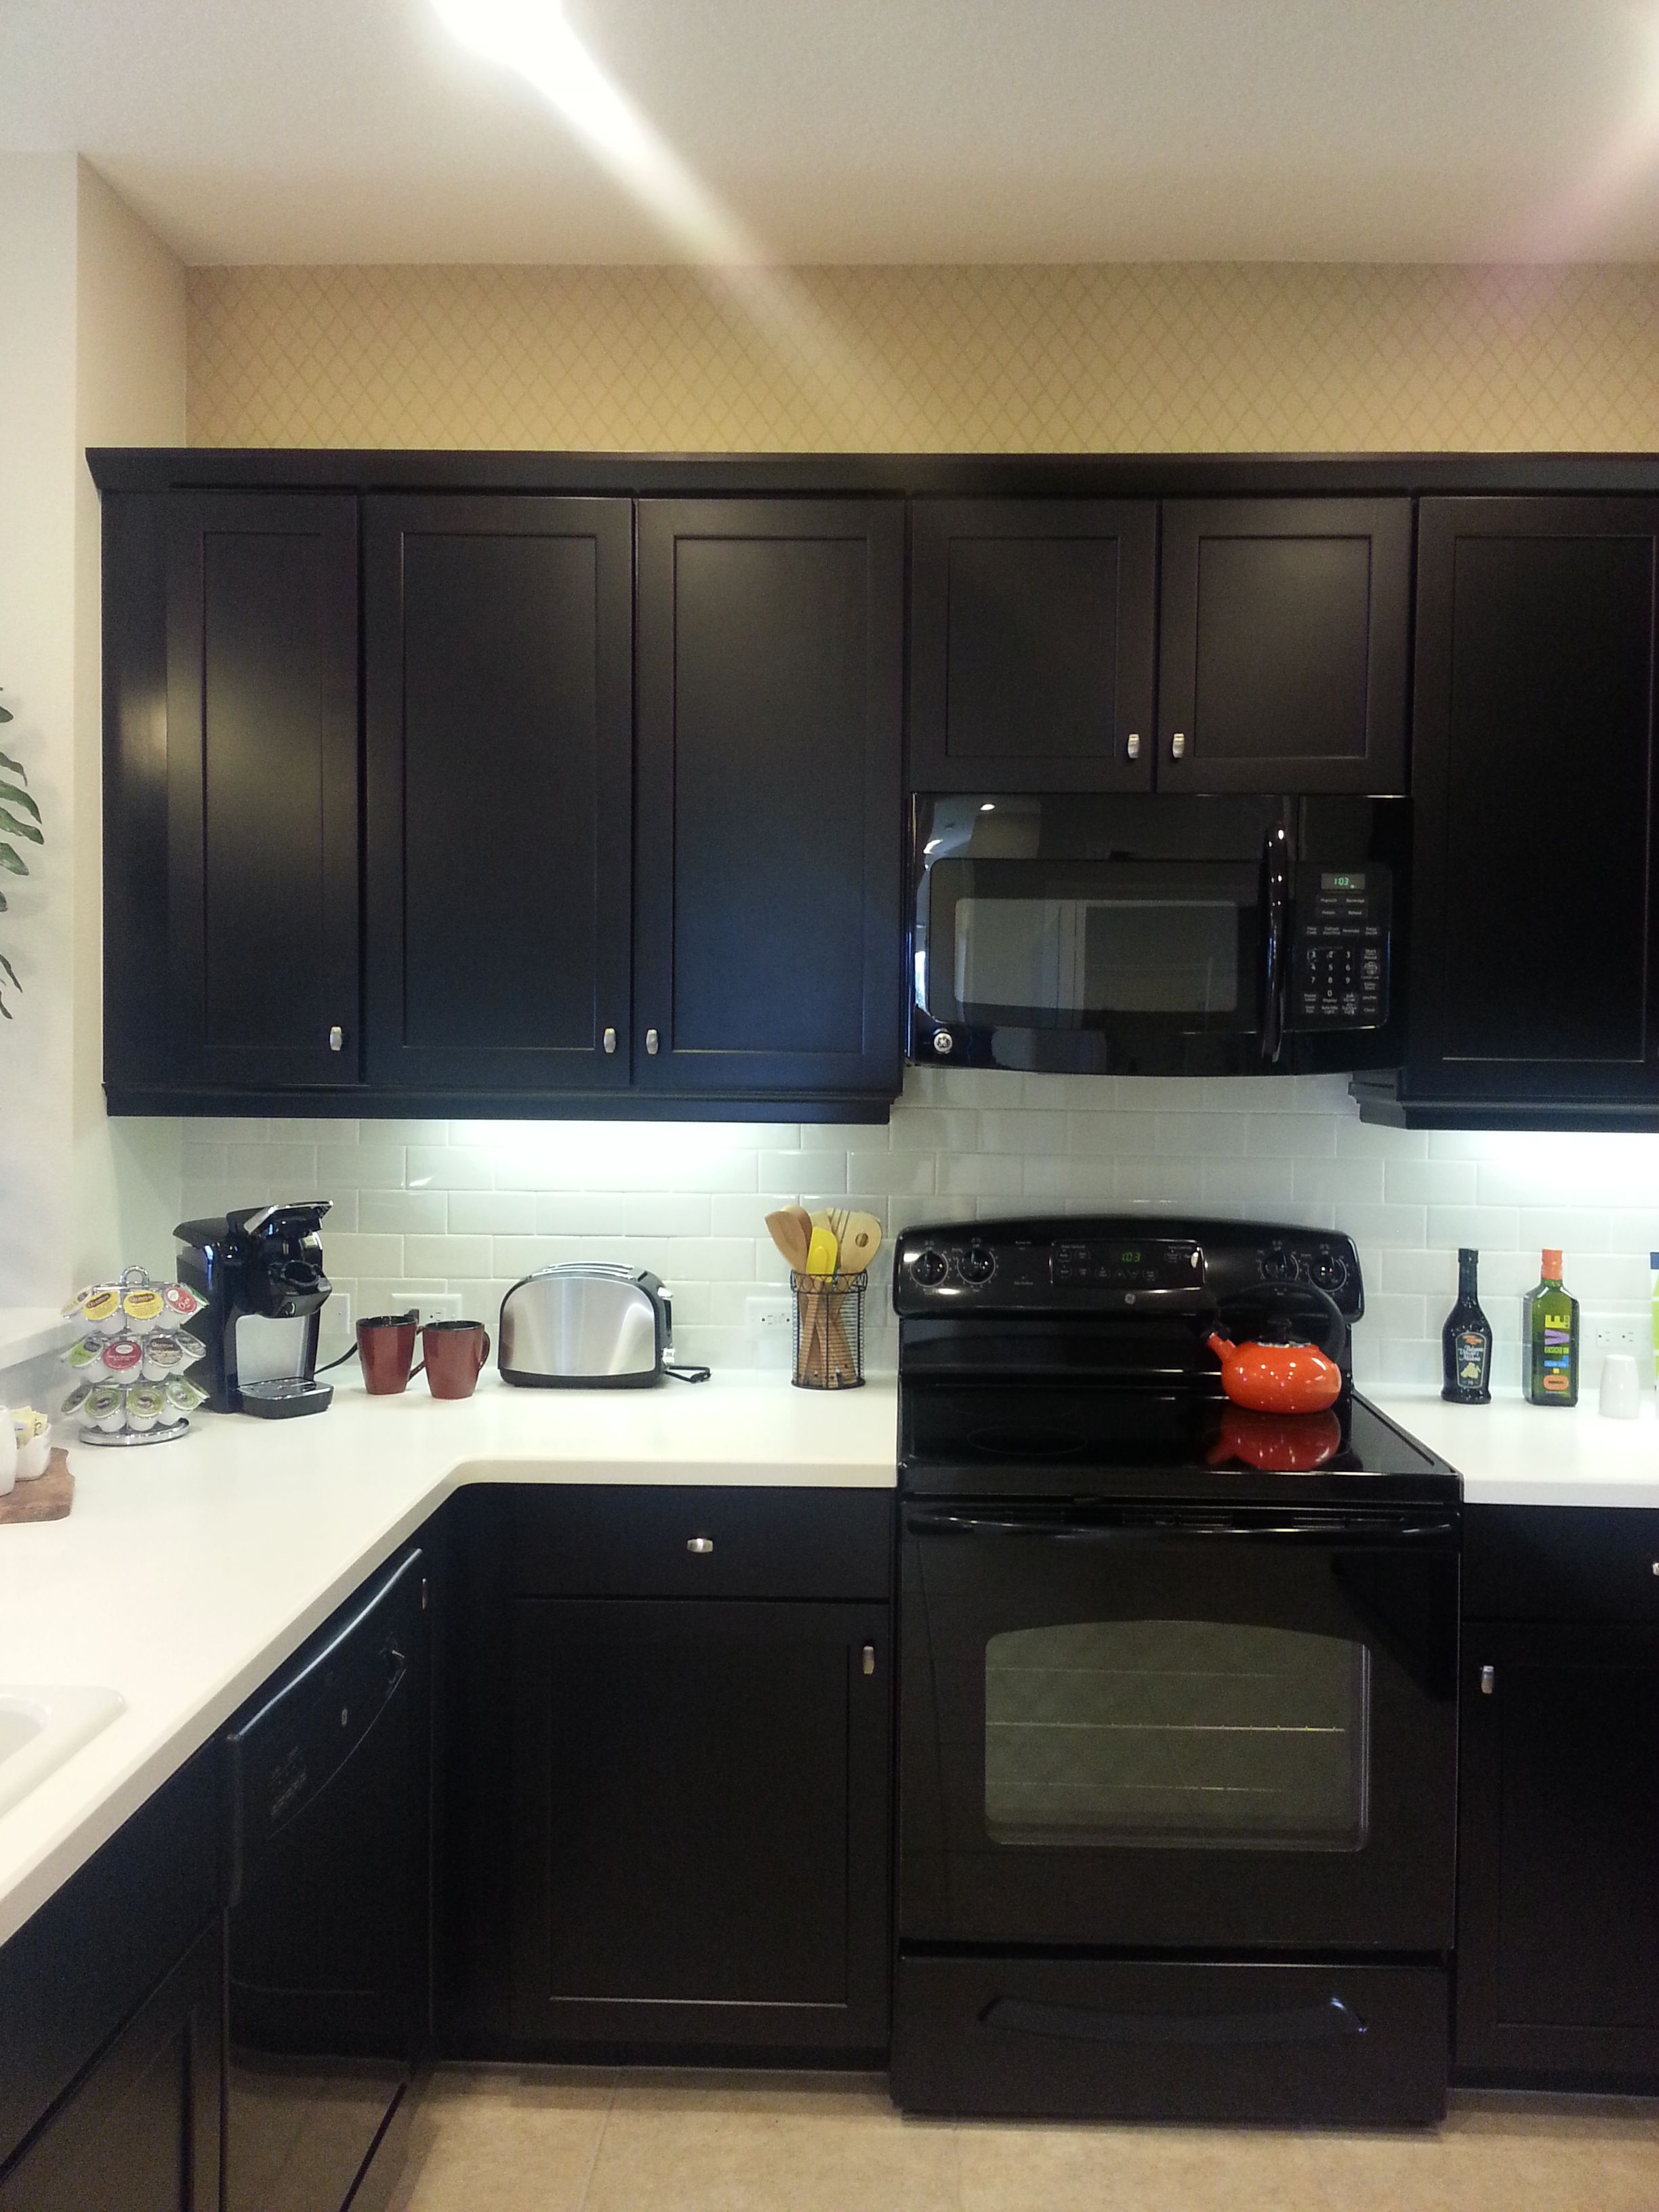 Model) kitchen, I chose the same cabinets in Expresso, with white ...